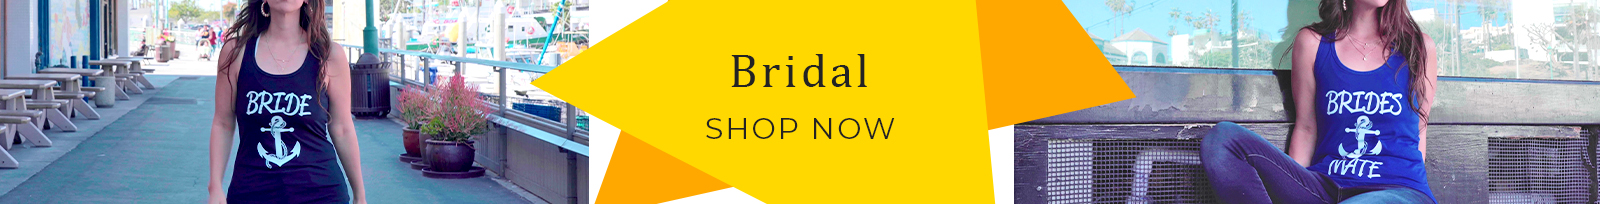 category-pages-marketing-banner-bridal.jpg